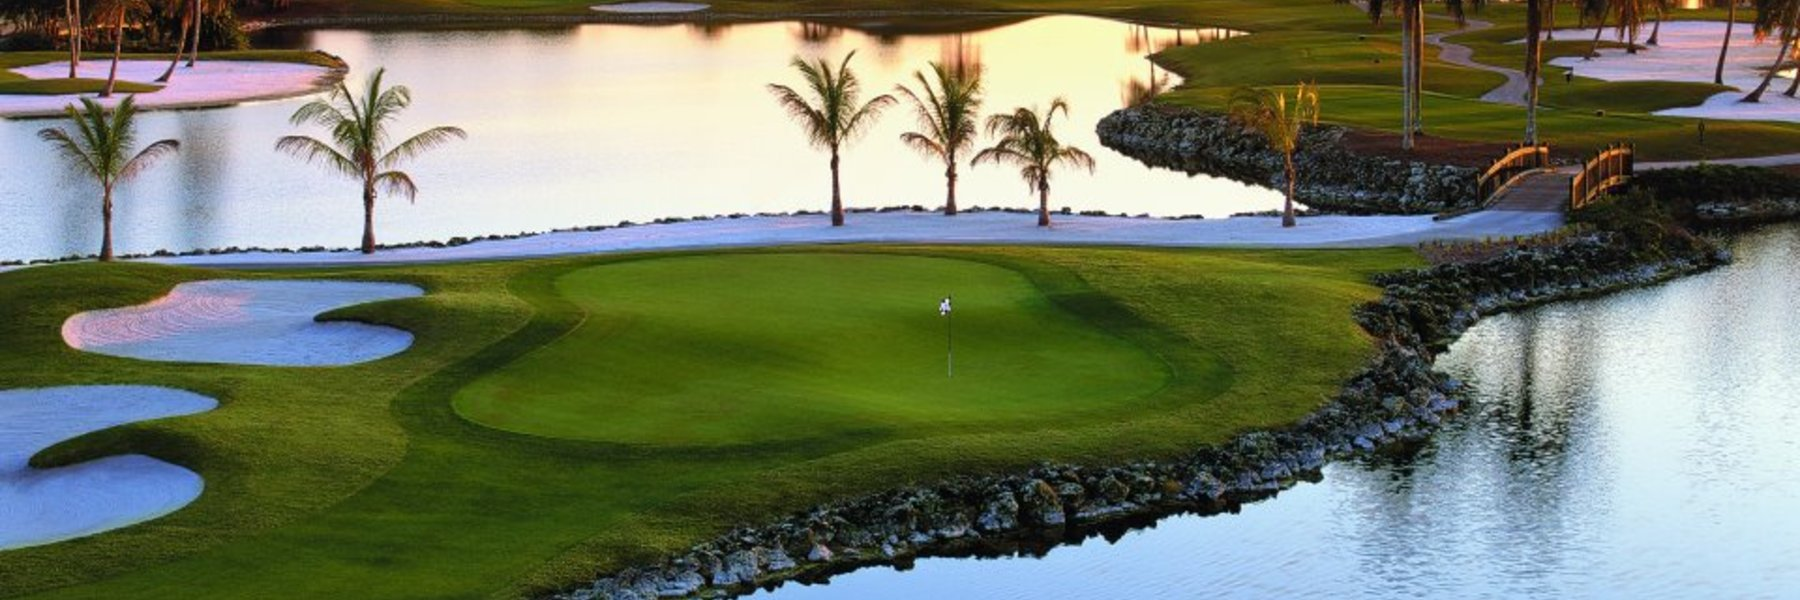 Golf Vacation Package - Naples Upscale Resort Late Fall Package $186 per day!